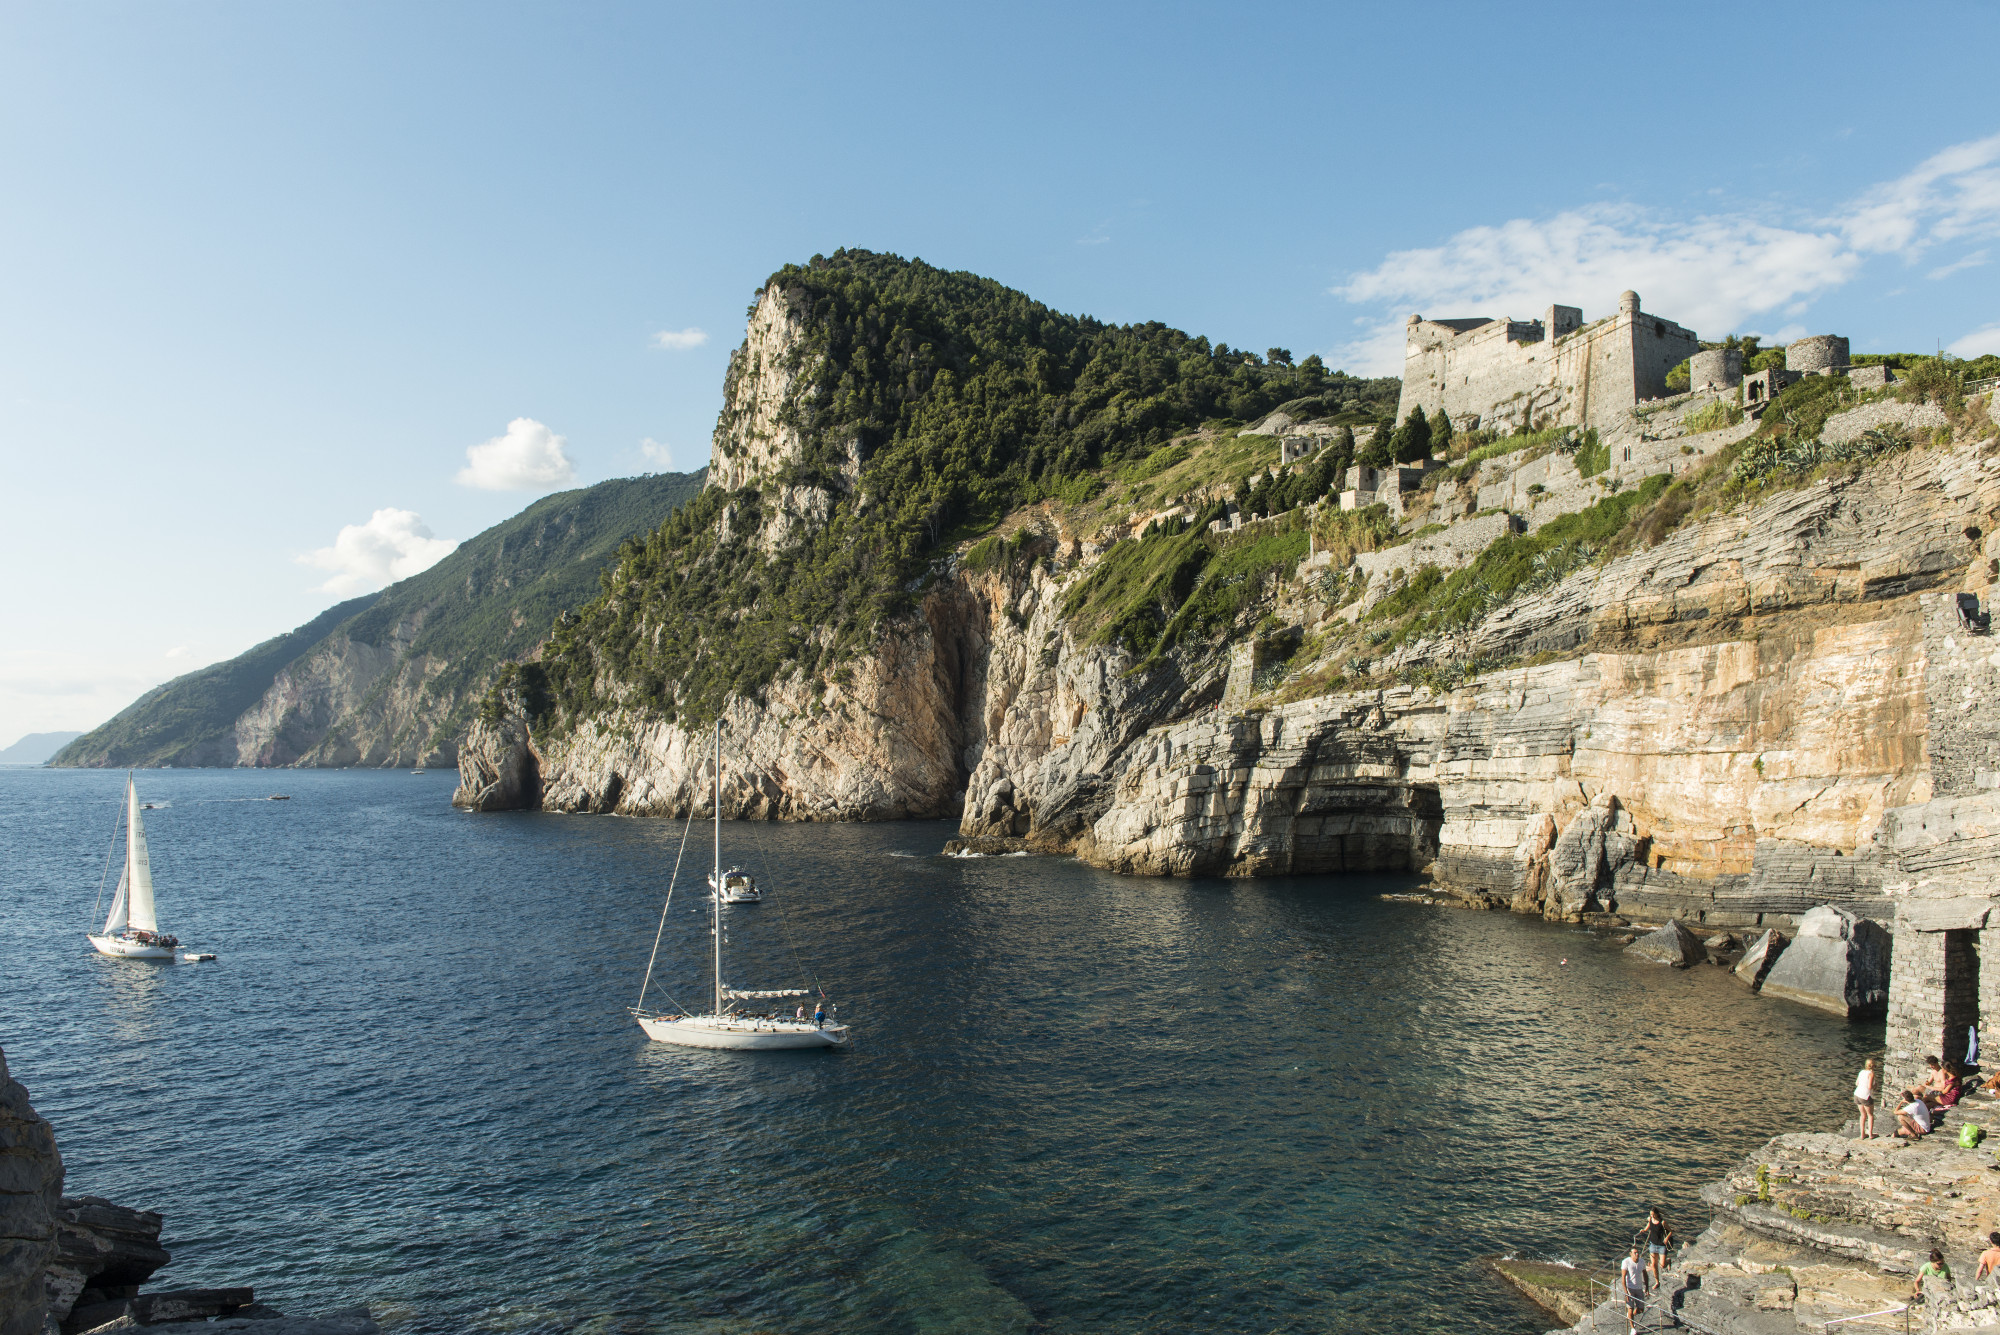 Top Ten Things to see and do in Portovenere